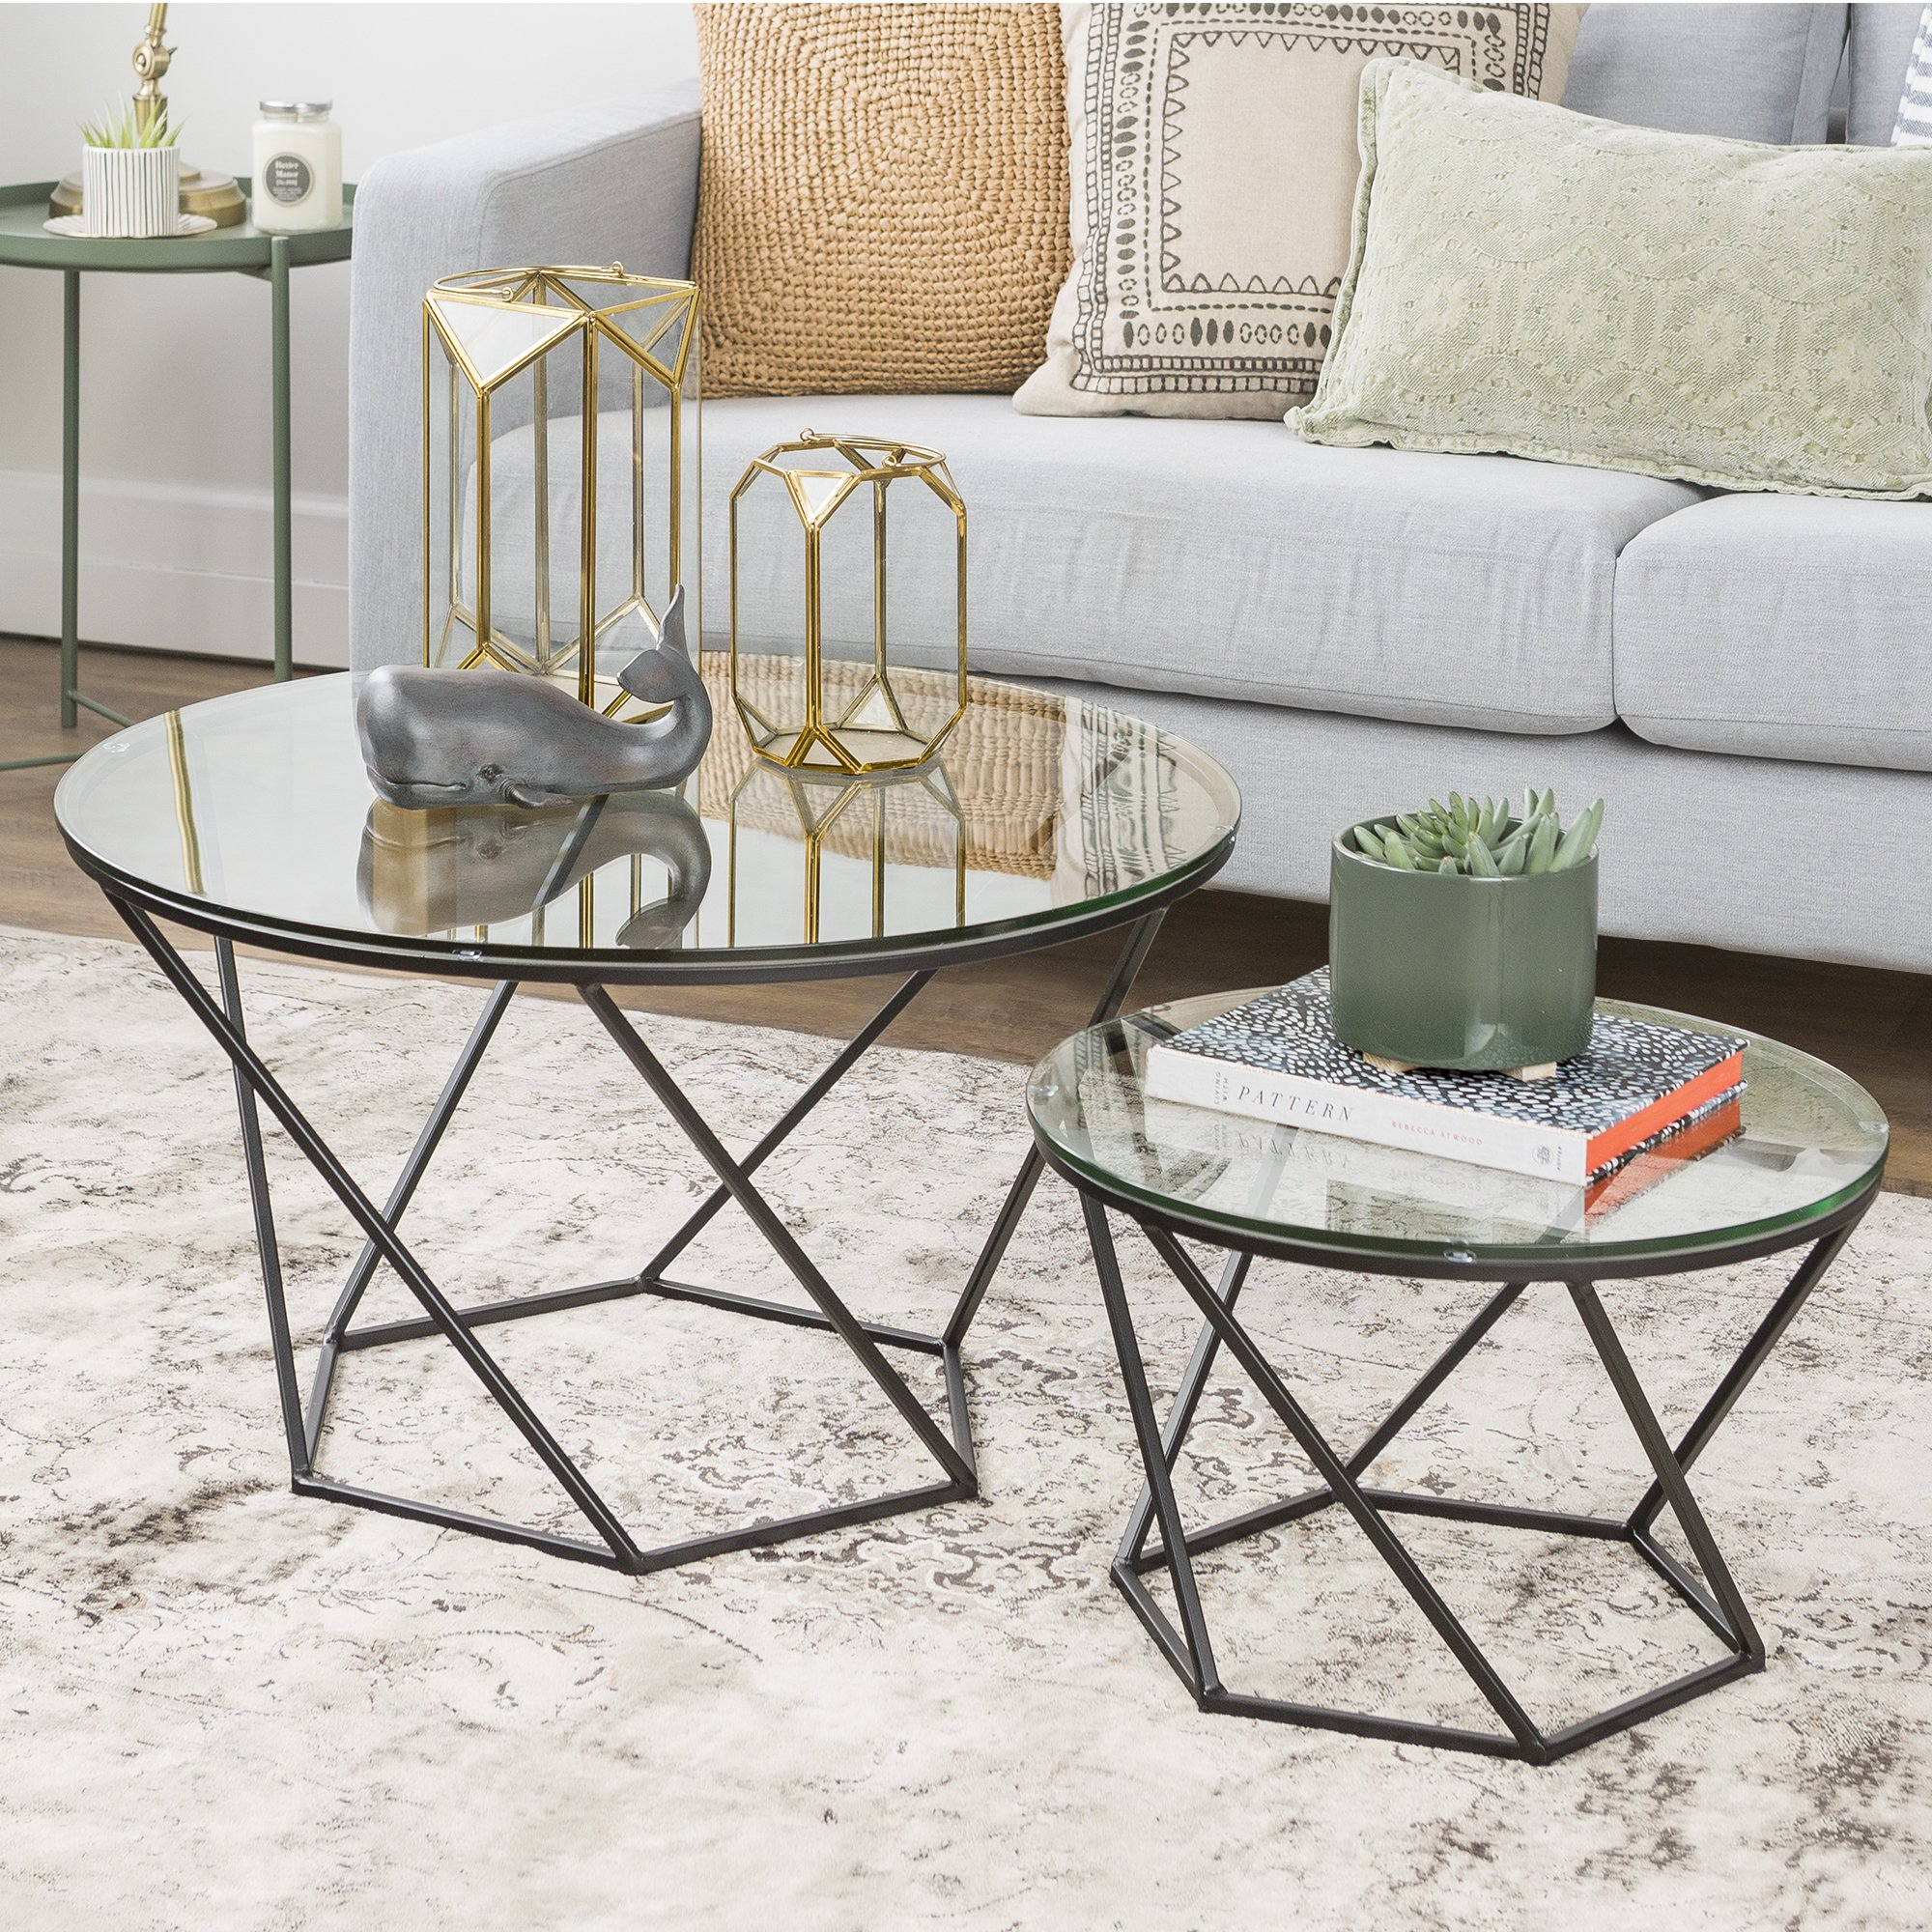 New Geometric Glass Nesting Coffee Tables in Black by Home Accent Furnishings